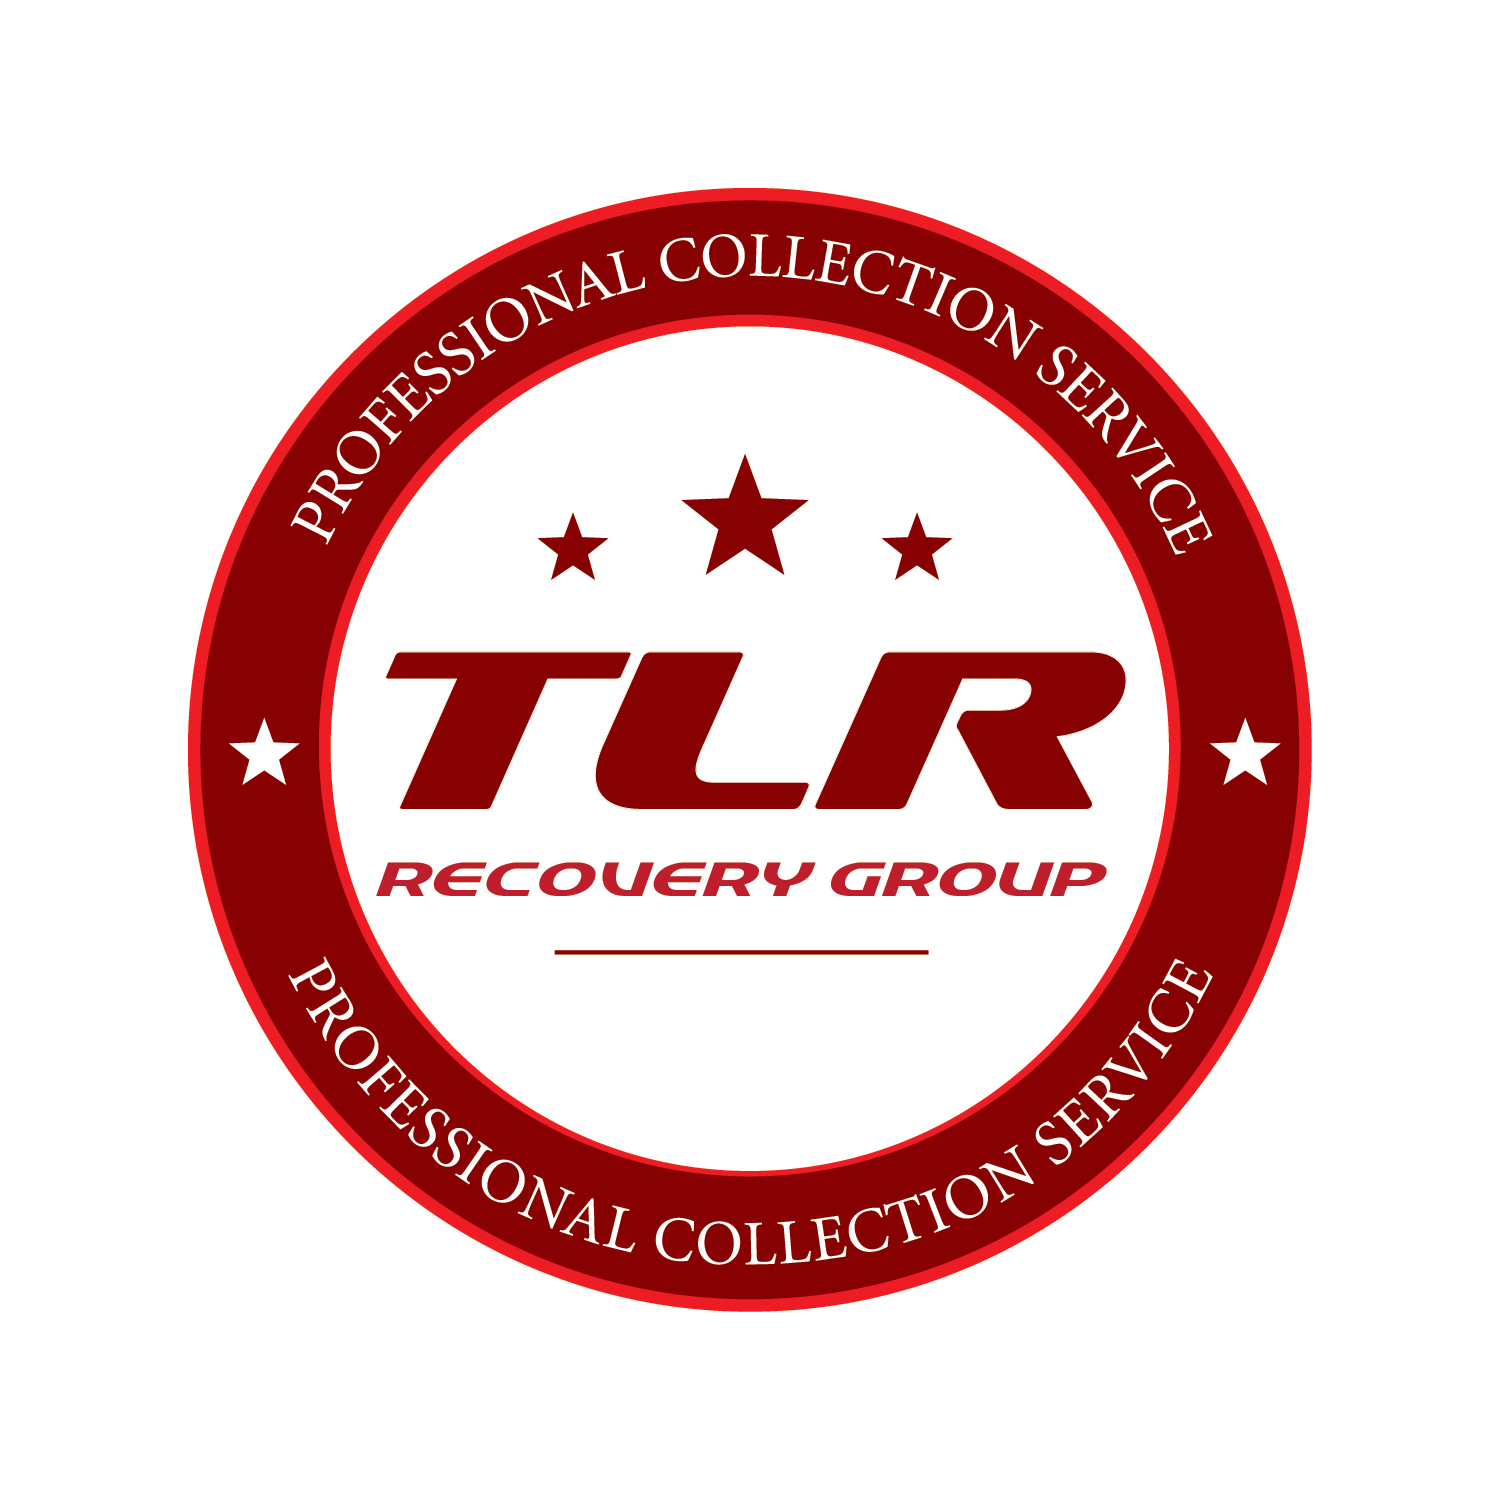 TLR Recovery